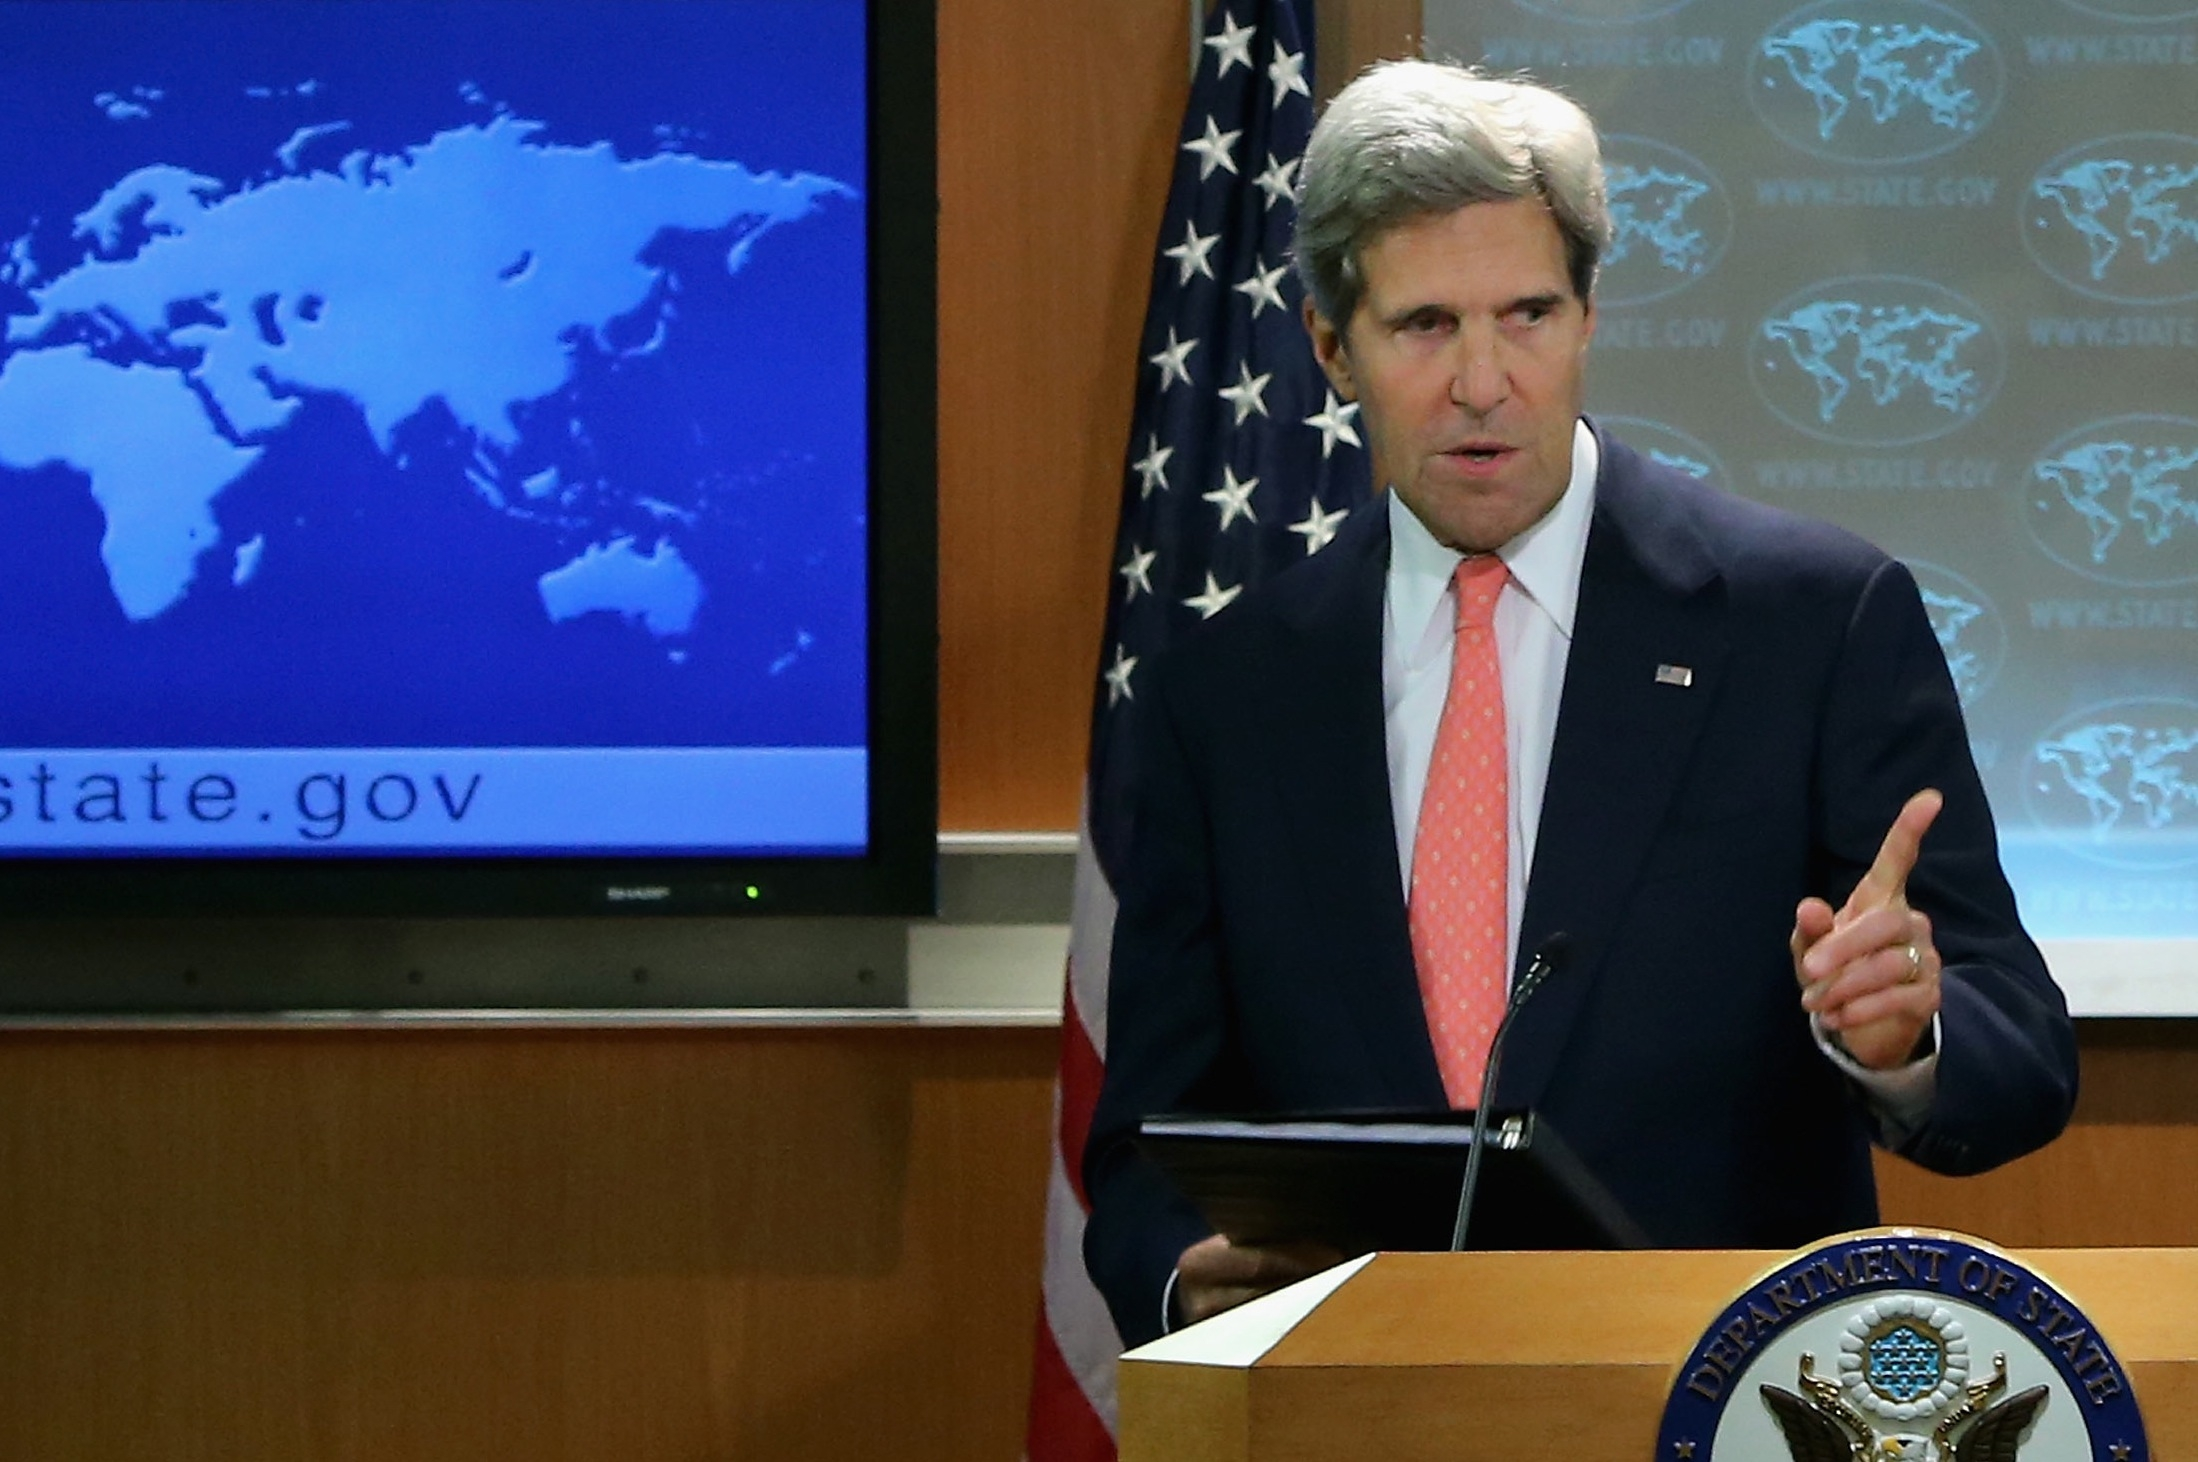 John Kerry Makes Statement To Press On Situation In Syria